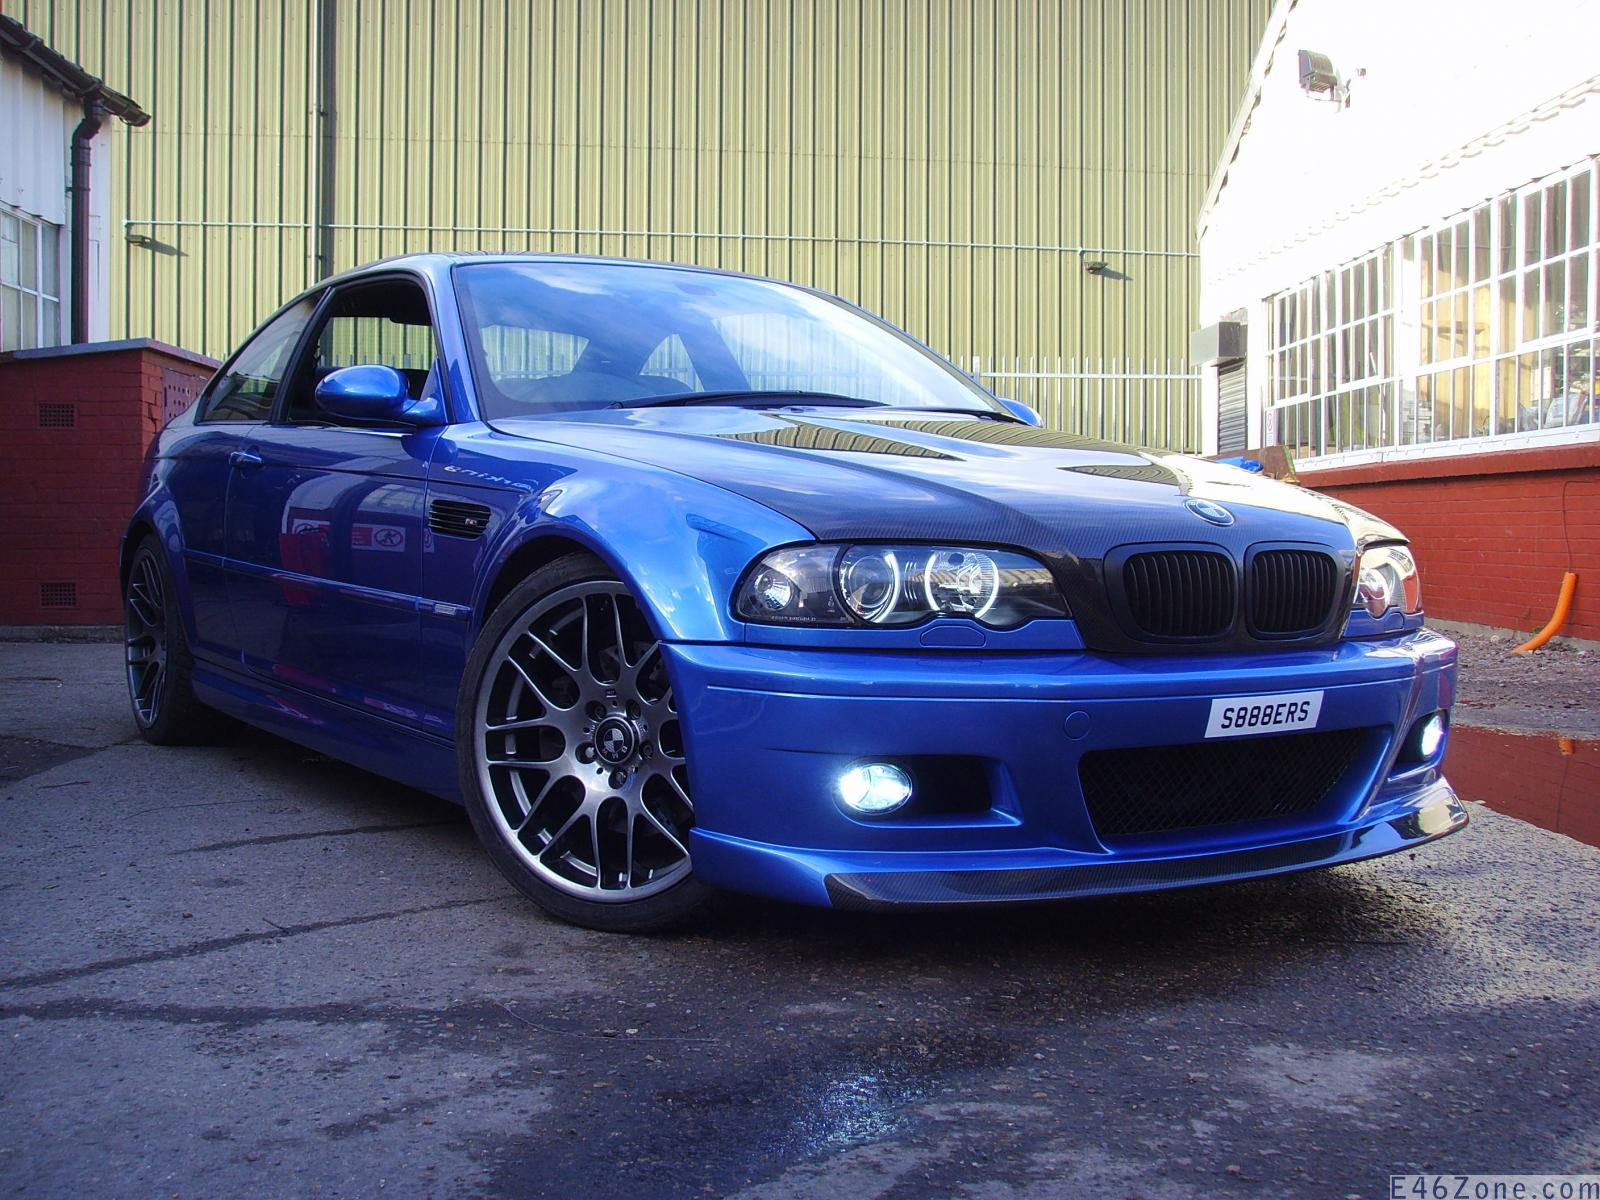 2x E46 M3 S For Sale Highly Modified Cars E46zone